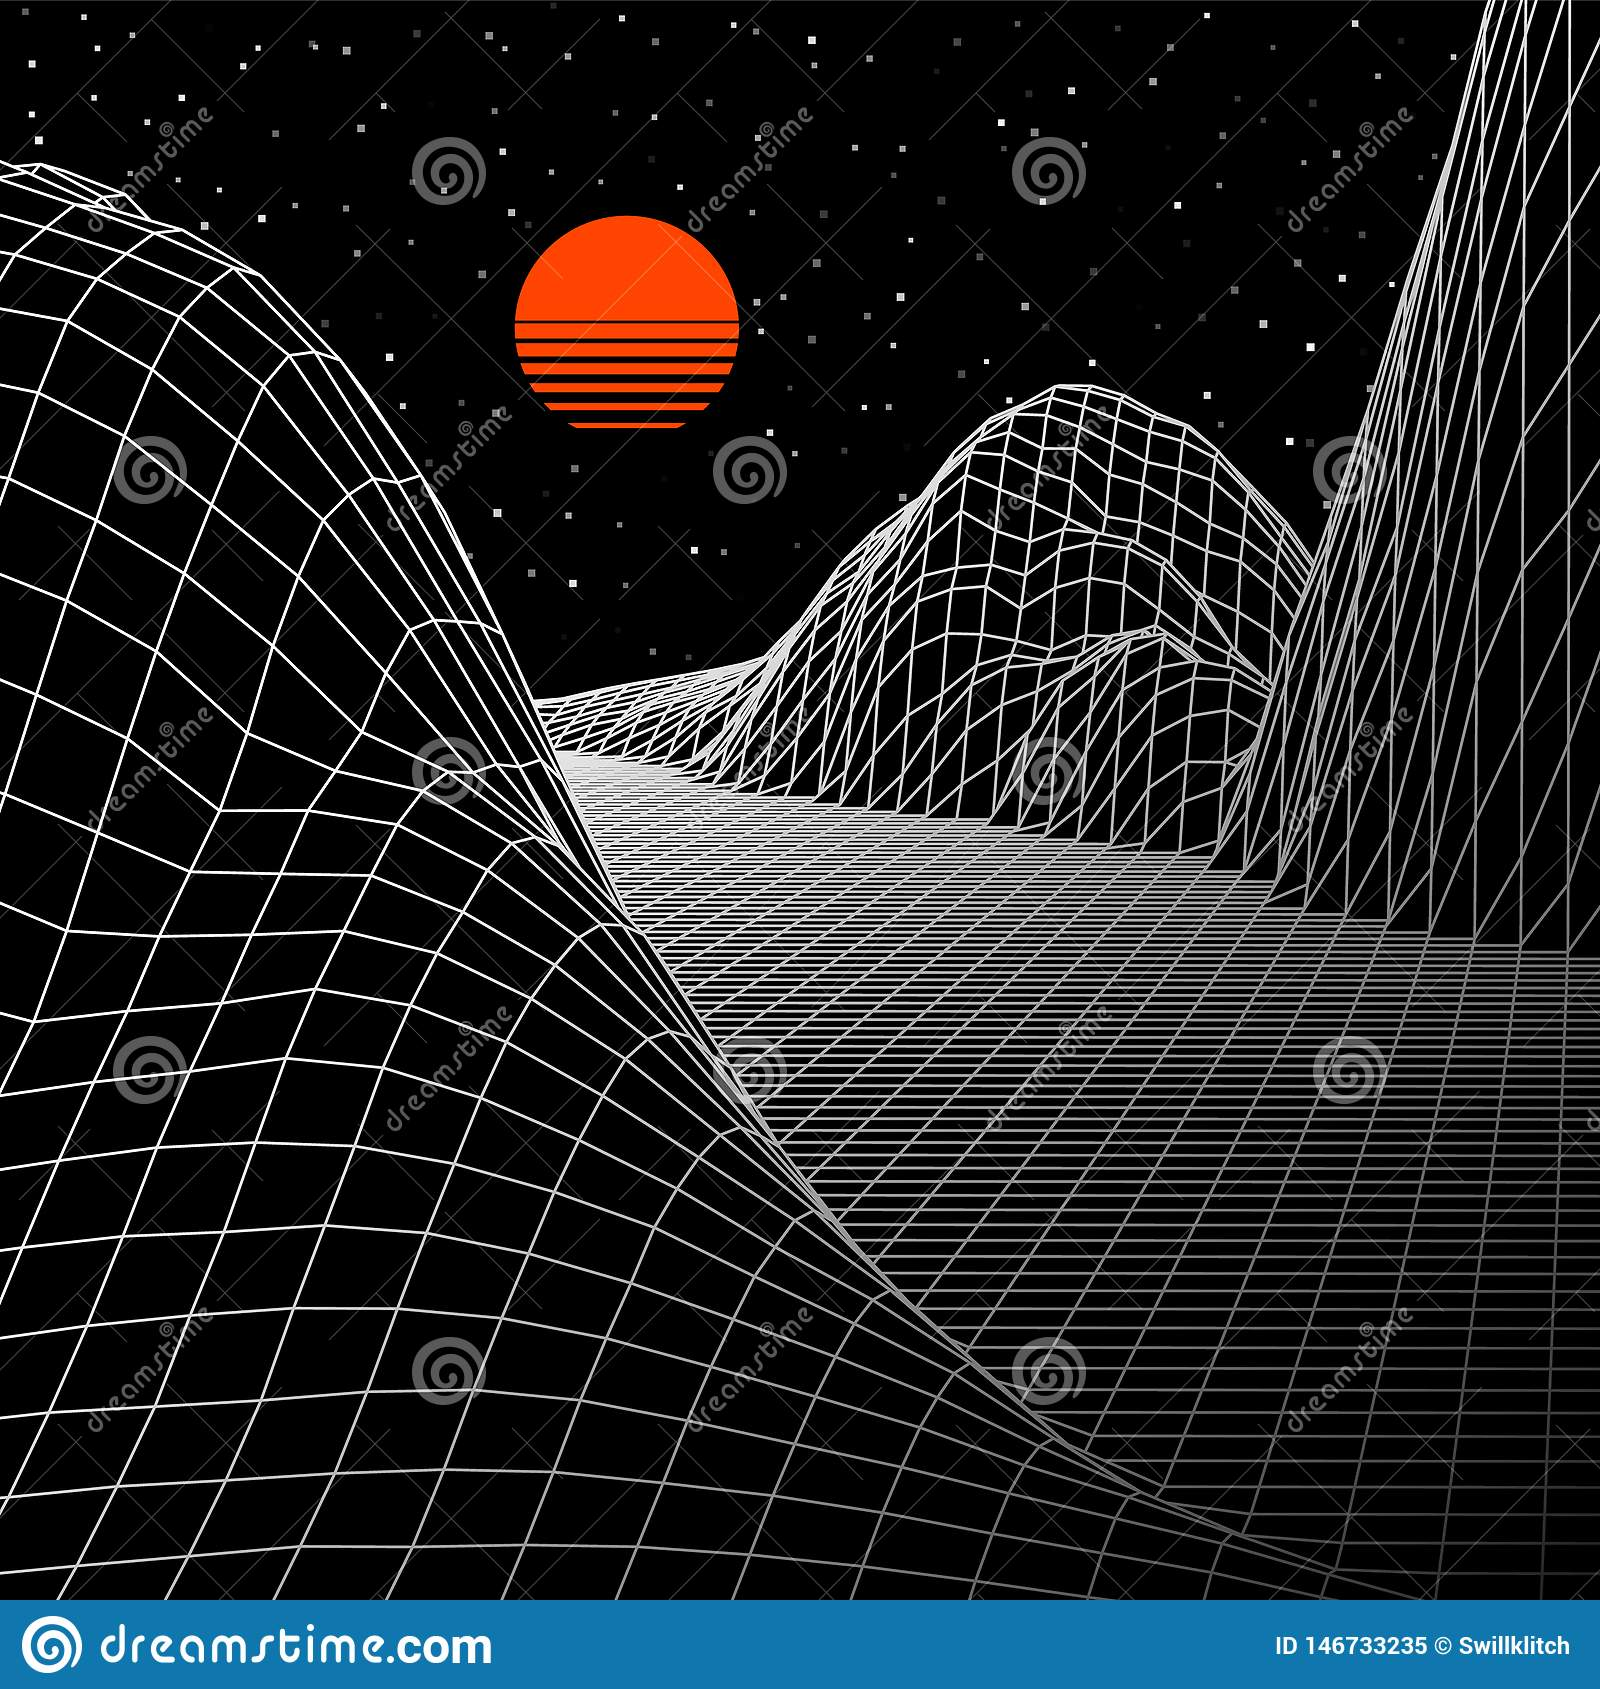 Landscape with wireframe grid of 80s styled retro computer game or science background 3d structure with sun